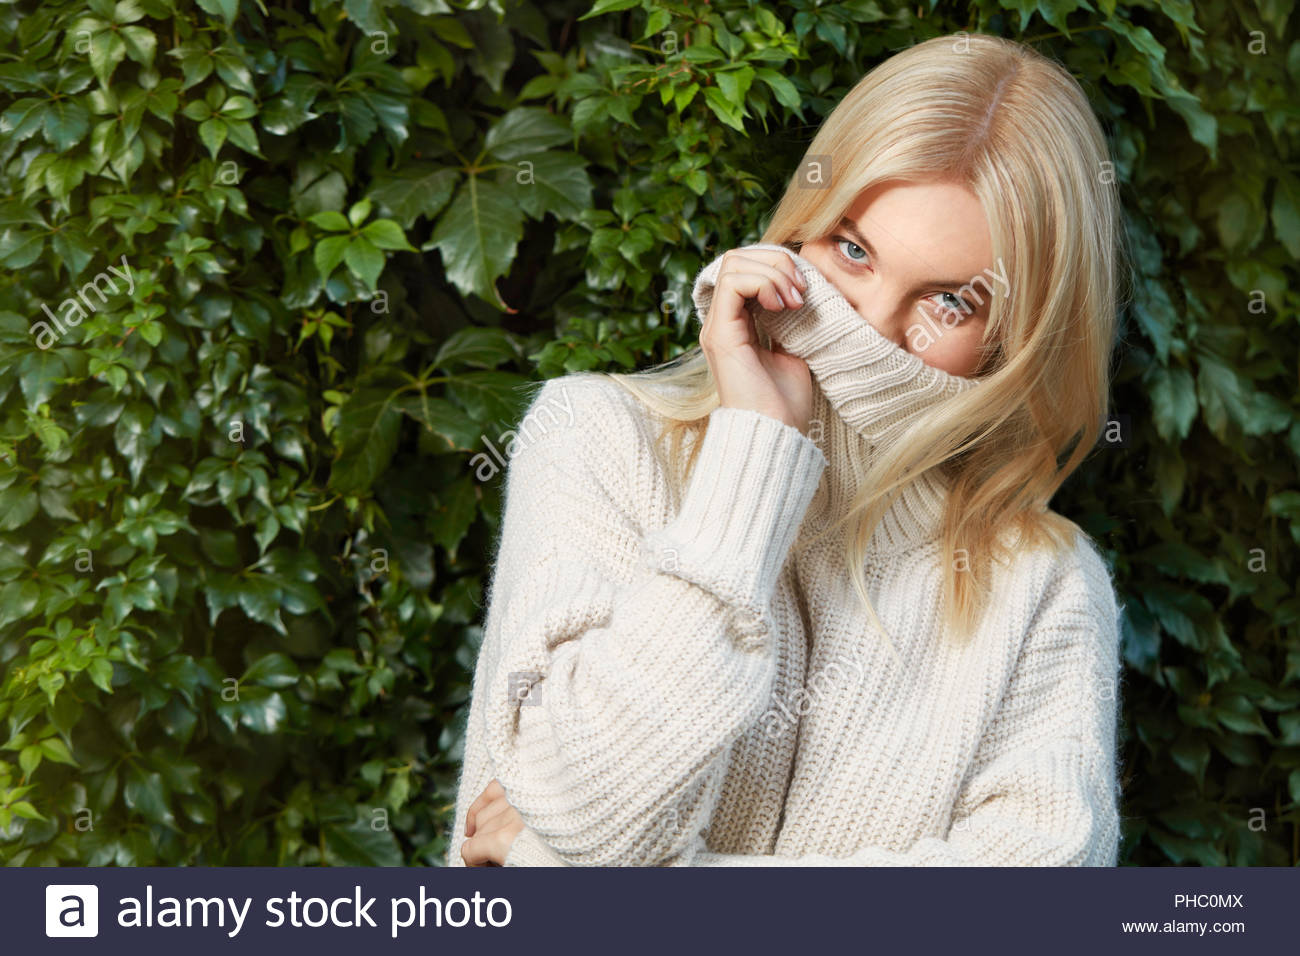 Young woman wearing sweater in front of hedge. - Stock Image